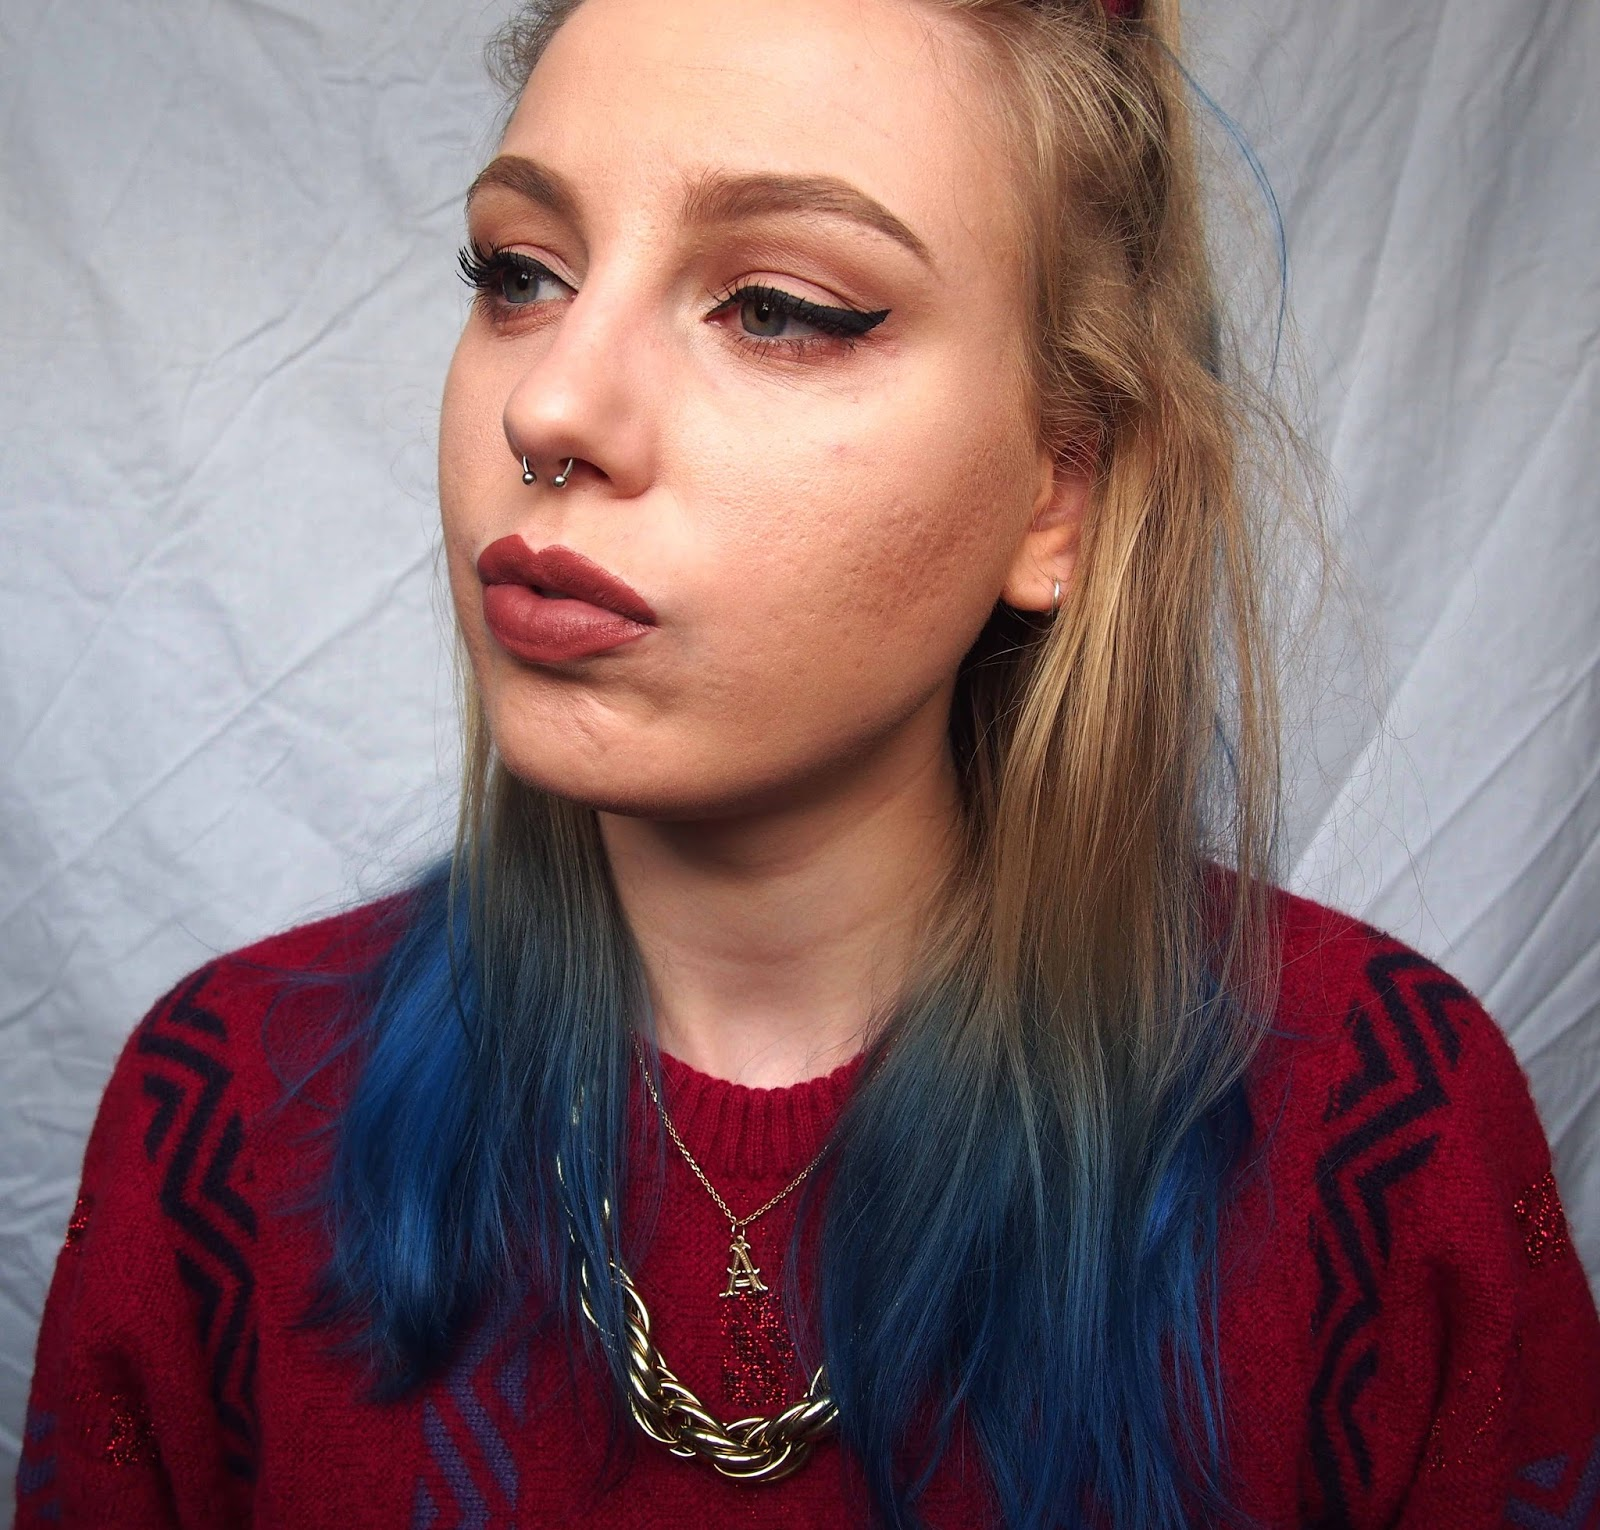 septum piercing, septum piercing advice, new spetum piercing, nyx liquid suede soft spoken, cat flick winged liner, vintage jumper, vintage gold chunky chain, vintage style 2